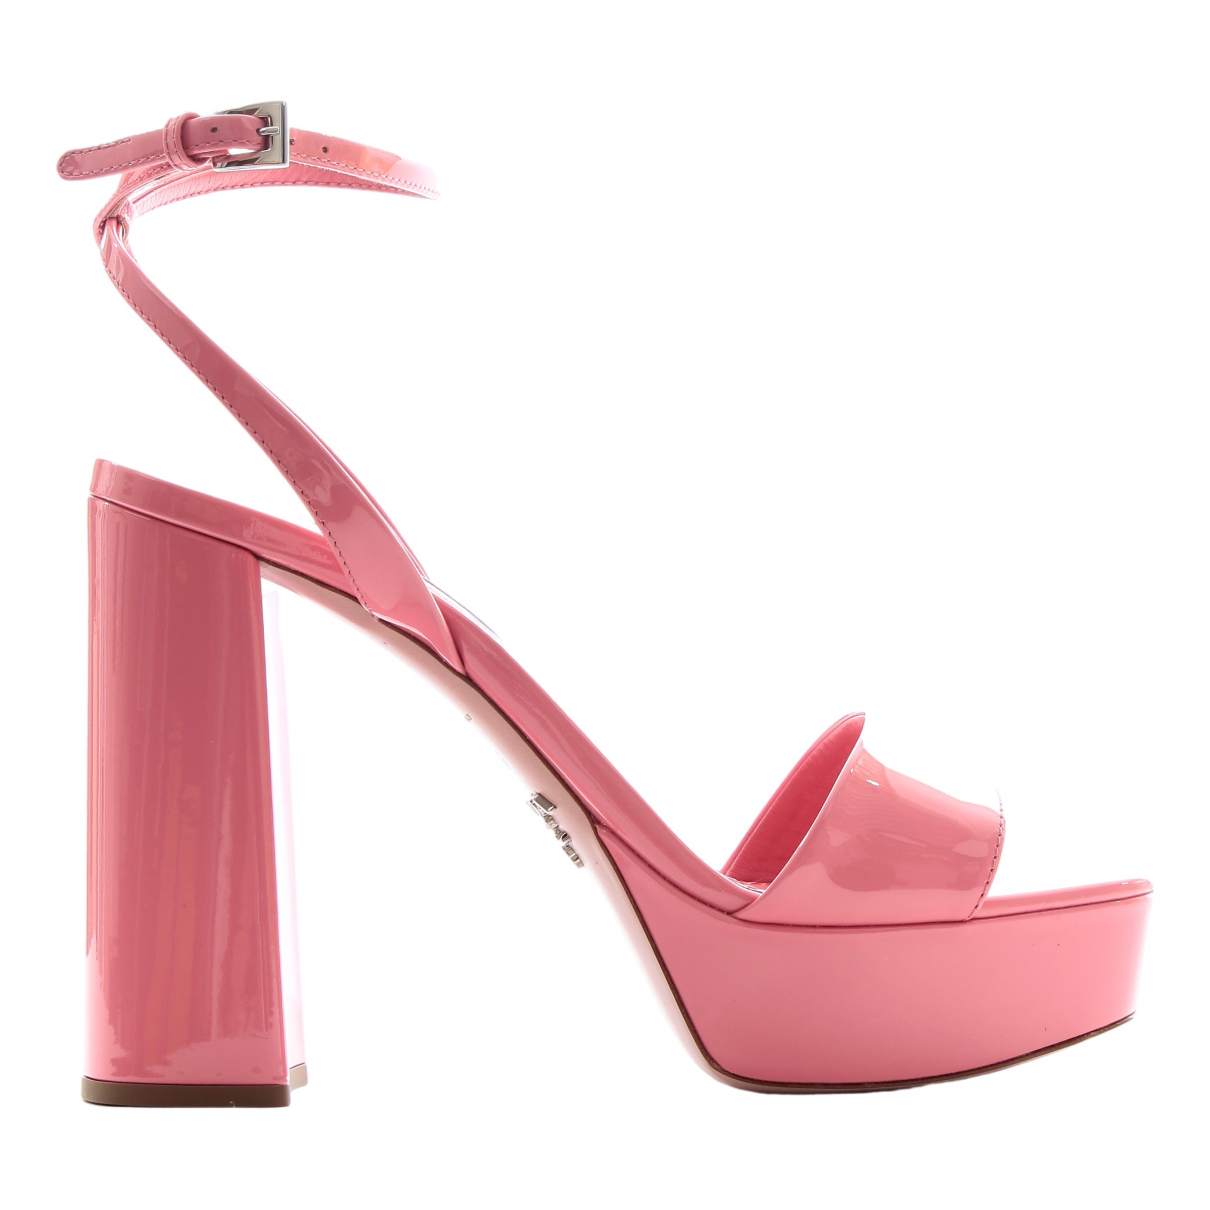 Prada N Pink Patent leather Sandals for Women 36 EU